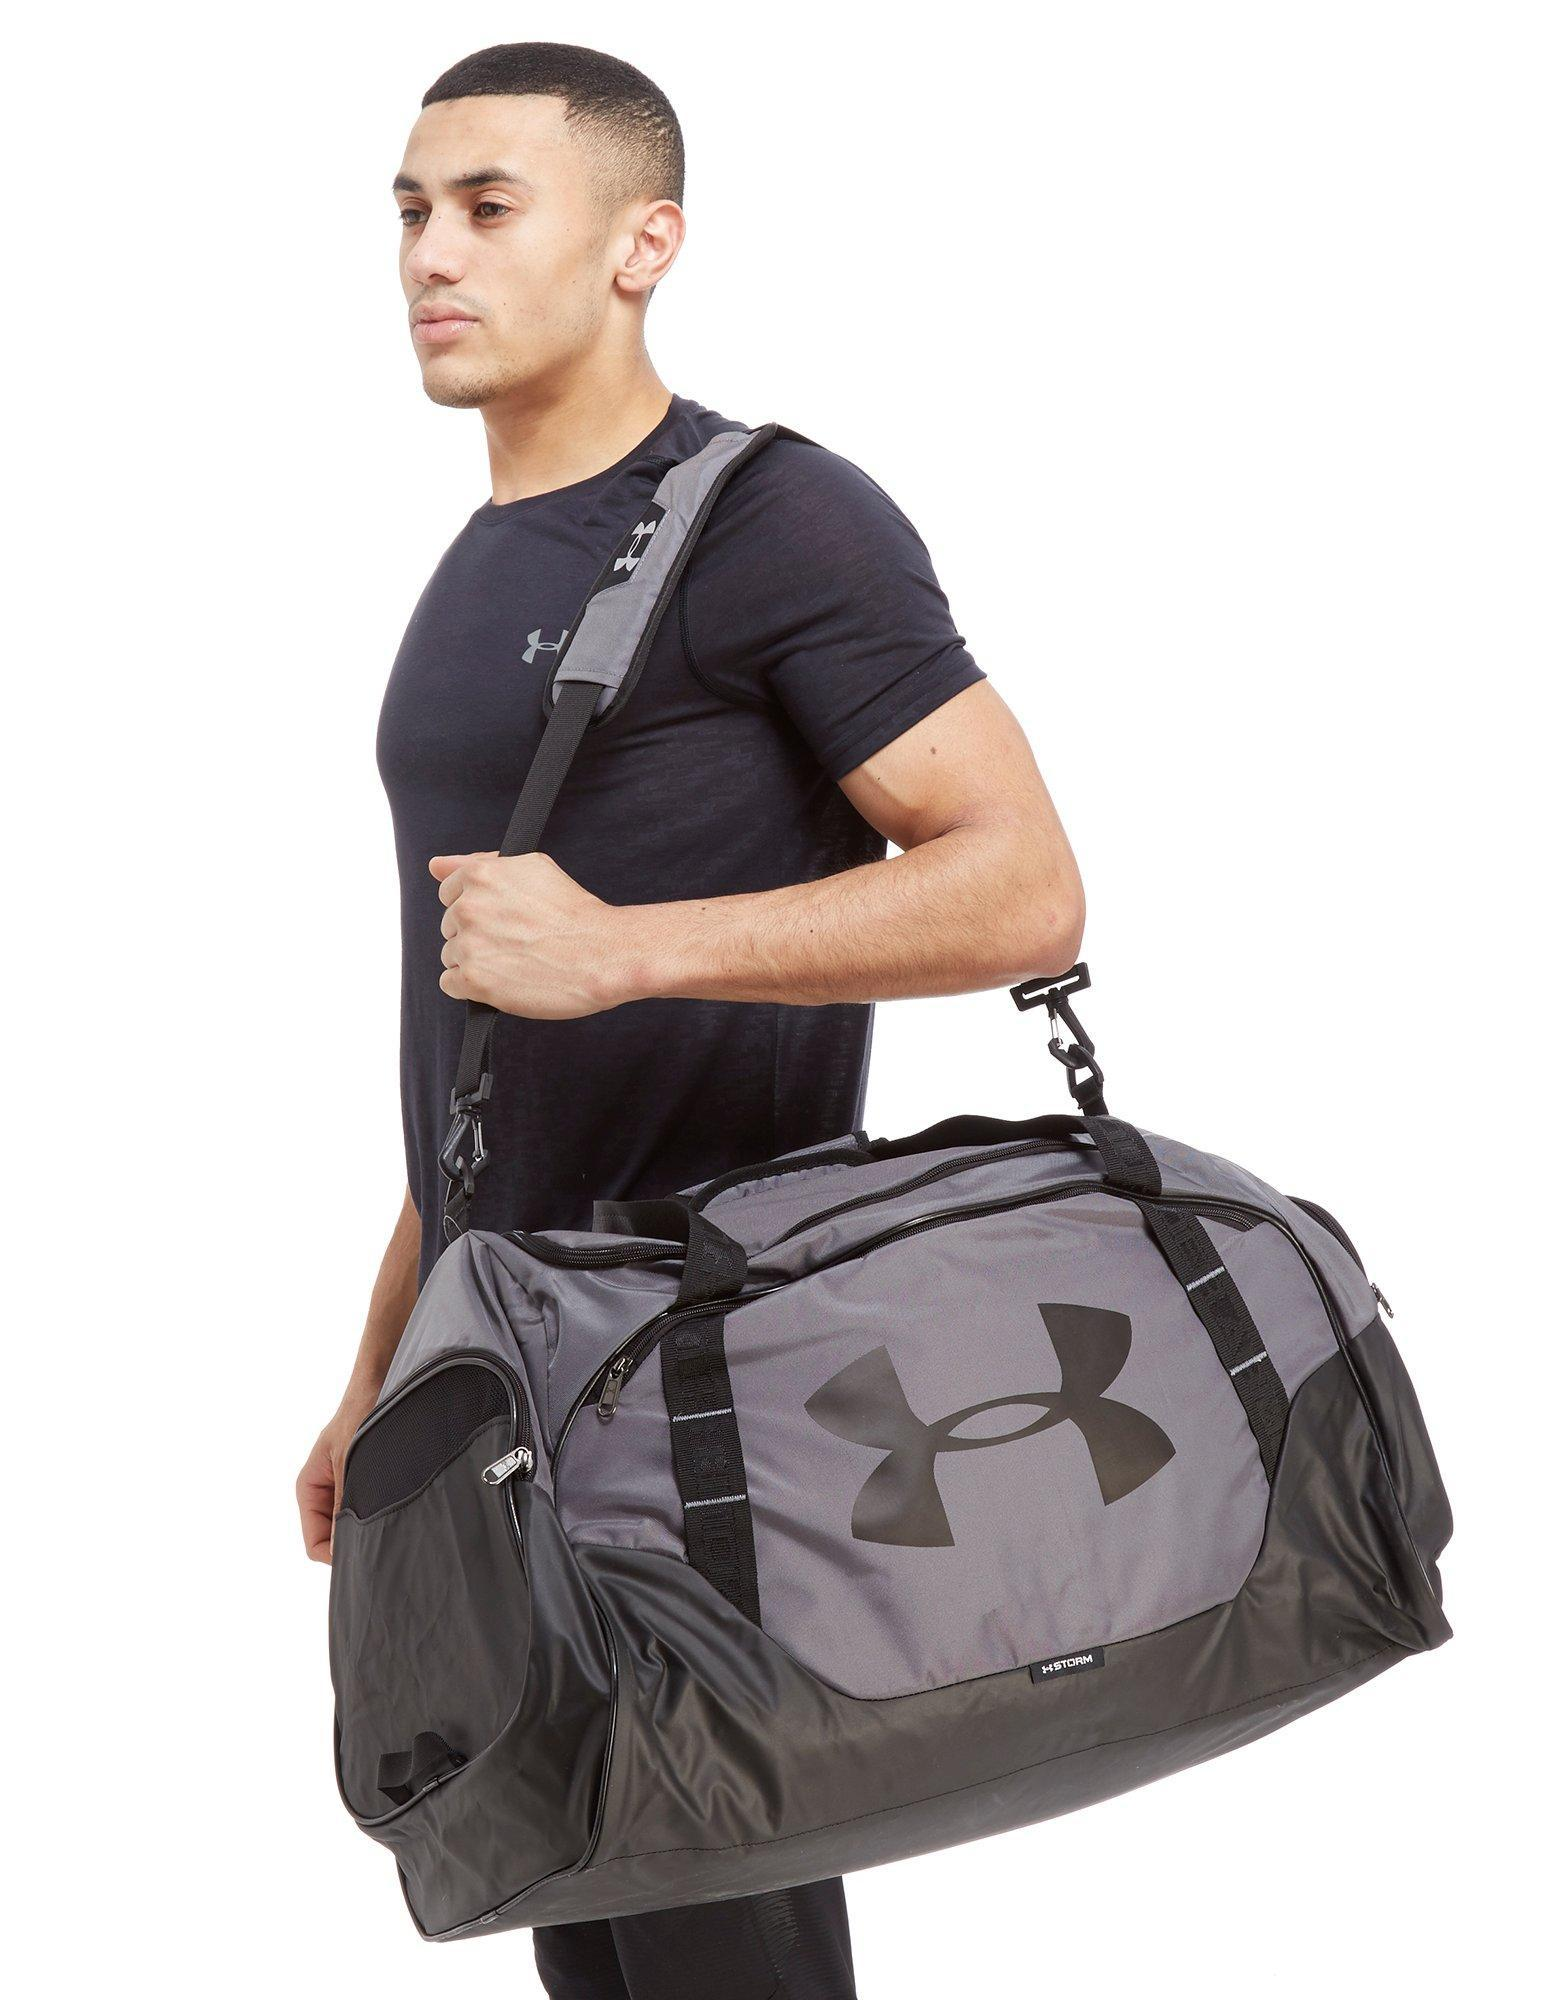 af241c2c6 Under Armour Undeniable Large Duffle Bag in Gray for Men - Lyst